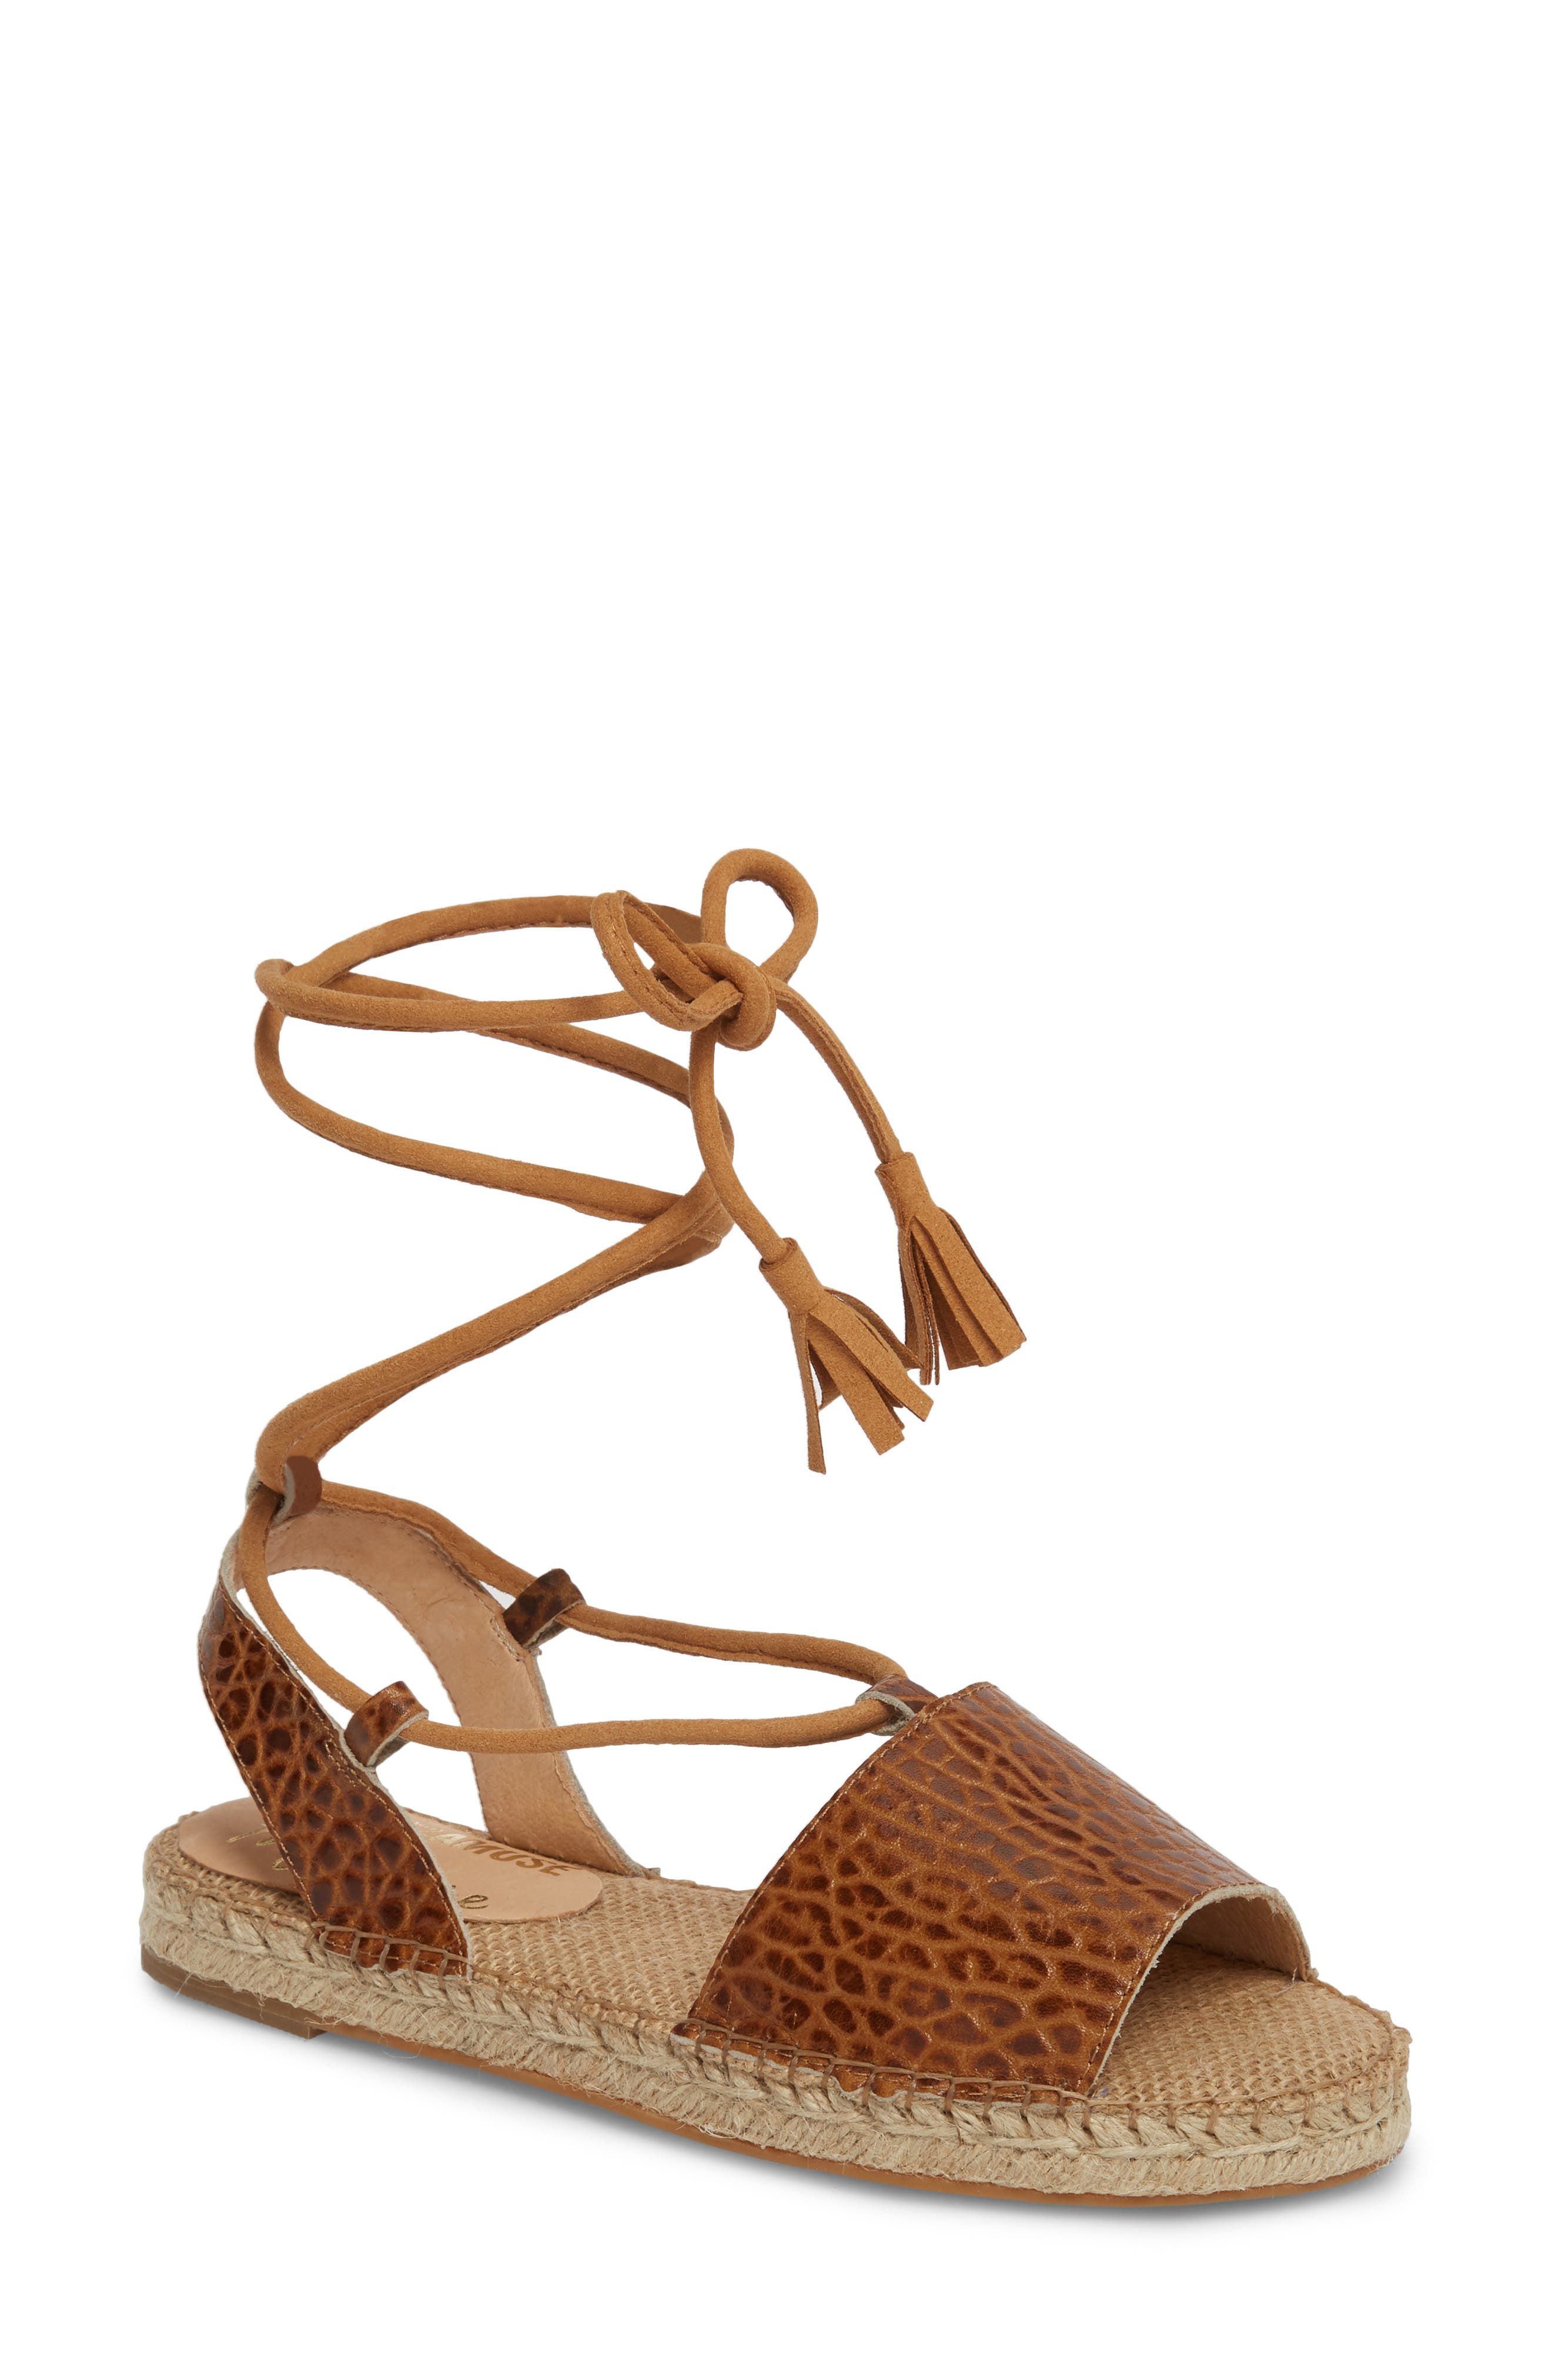 Amuse Society x Matisse La Vita Sandal,                         Main,                         color, Tan Leather